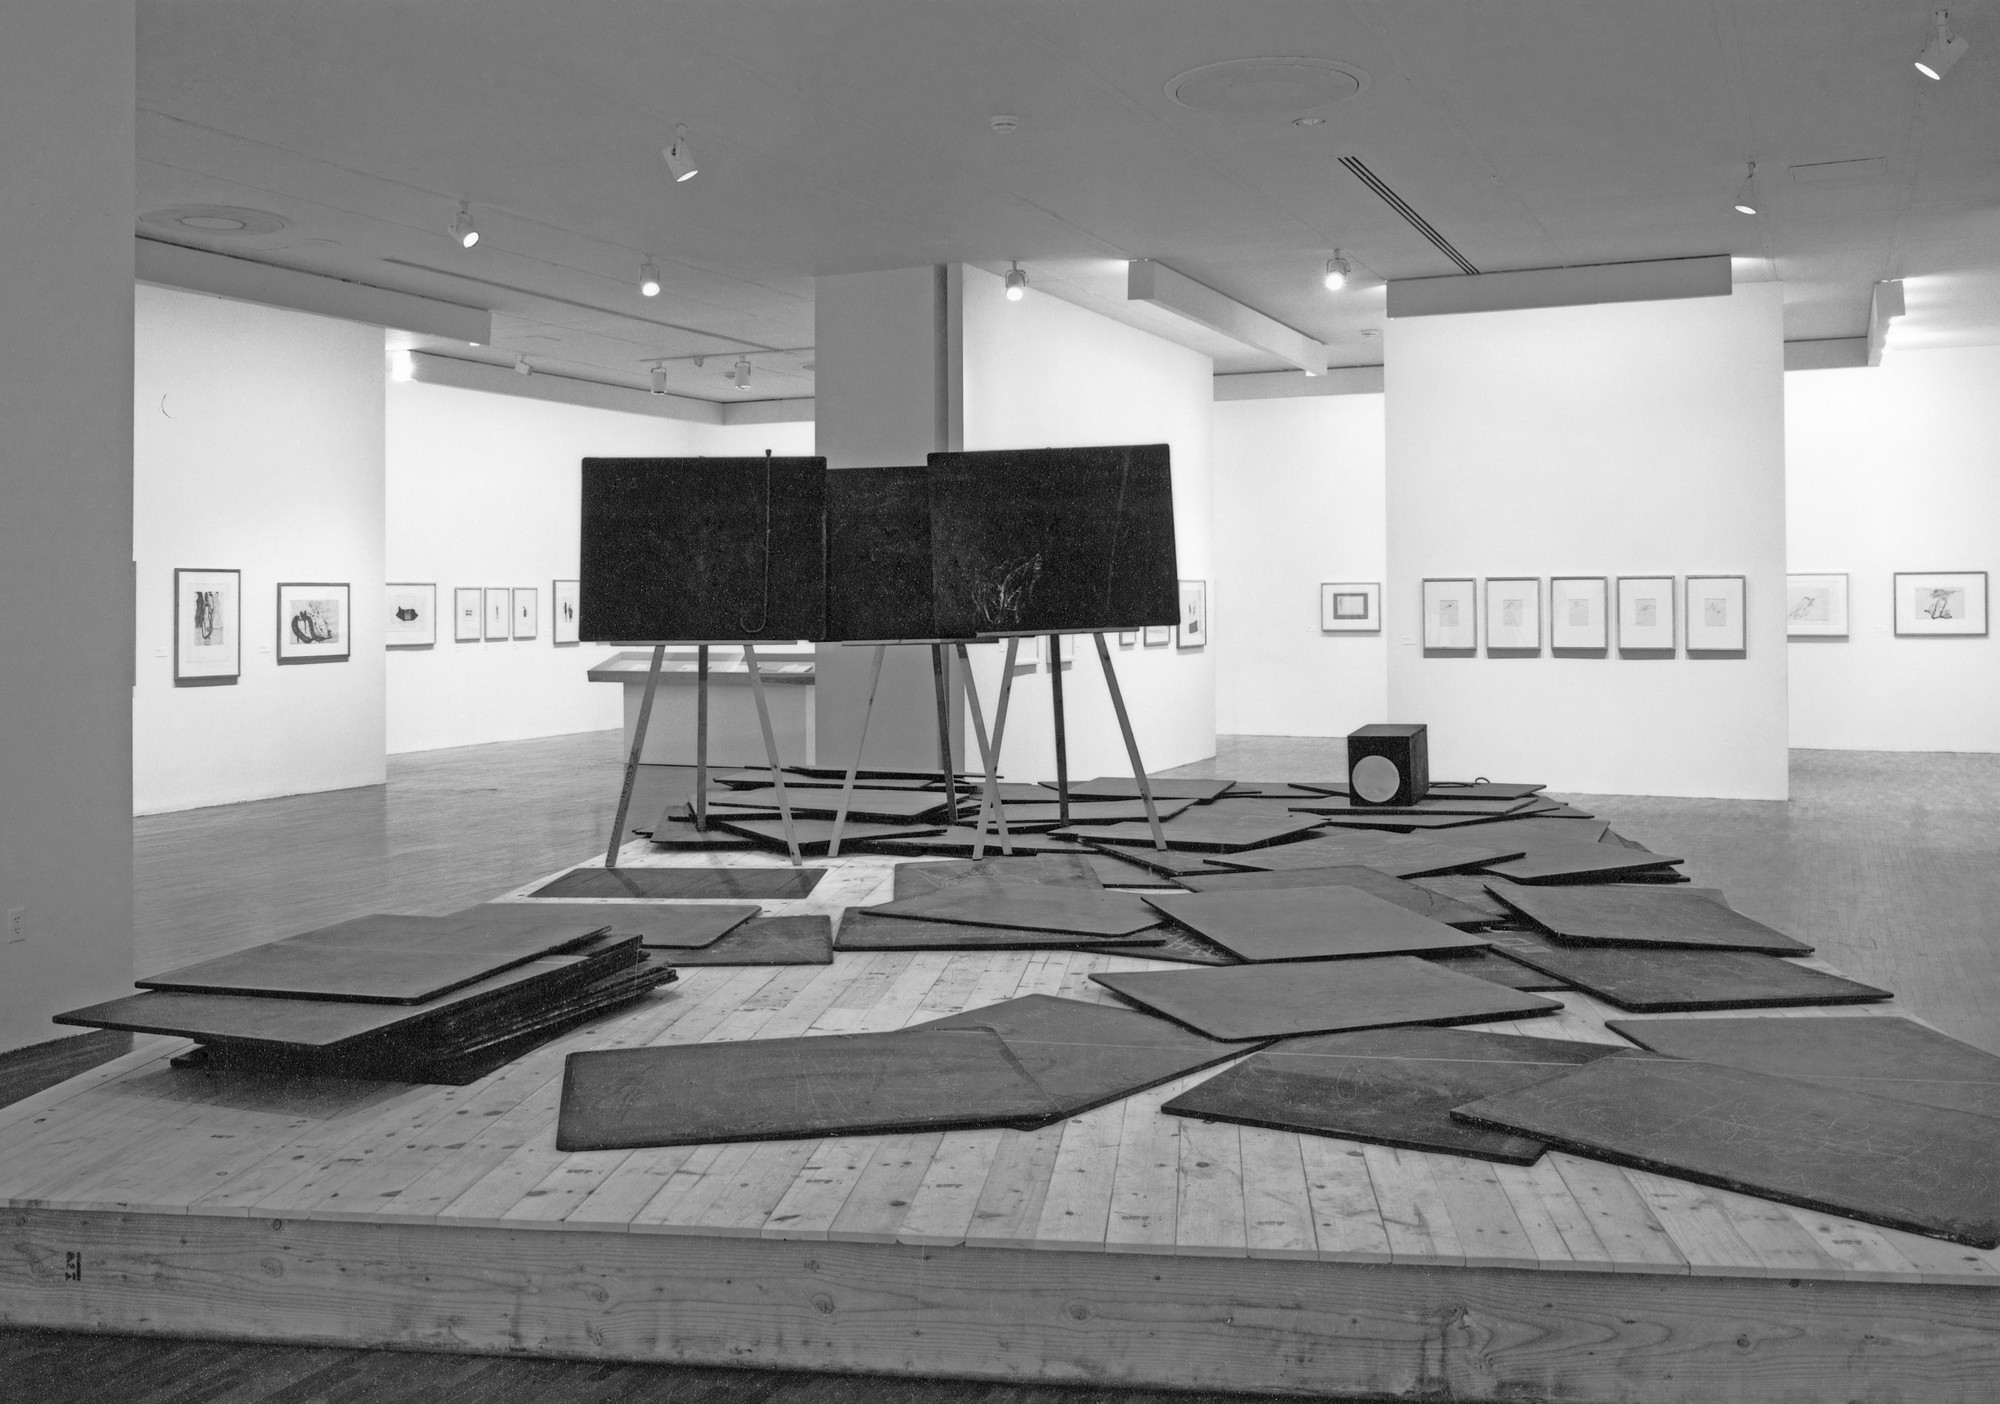 Installation view of Thinking Is Form: The Drawings of Joseph Beuys at The Museum of Modern Art, New York. Photo: Mali Olatunji